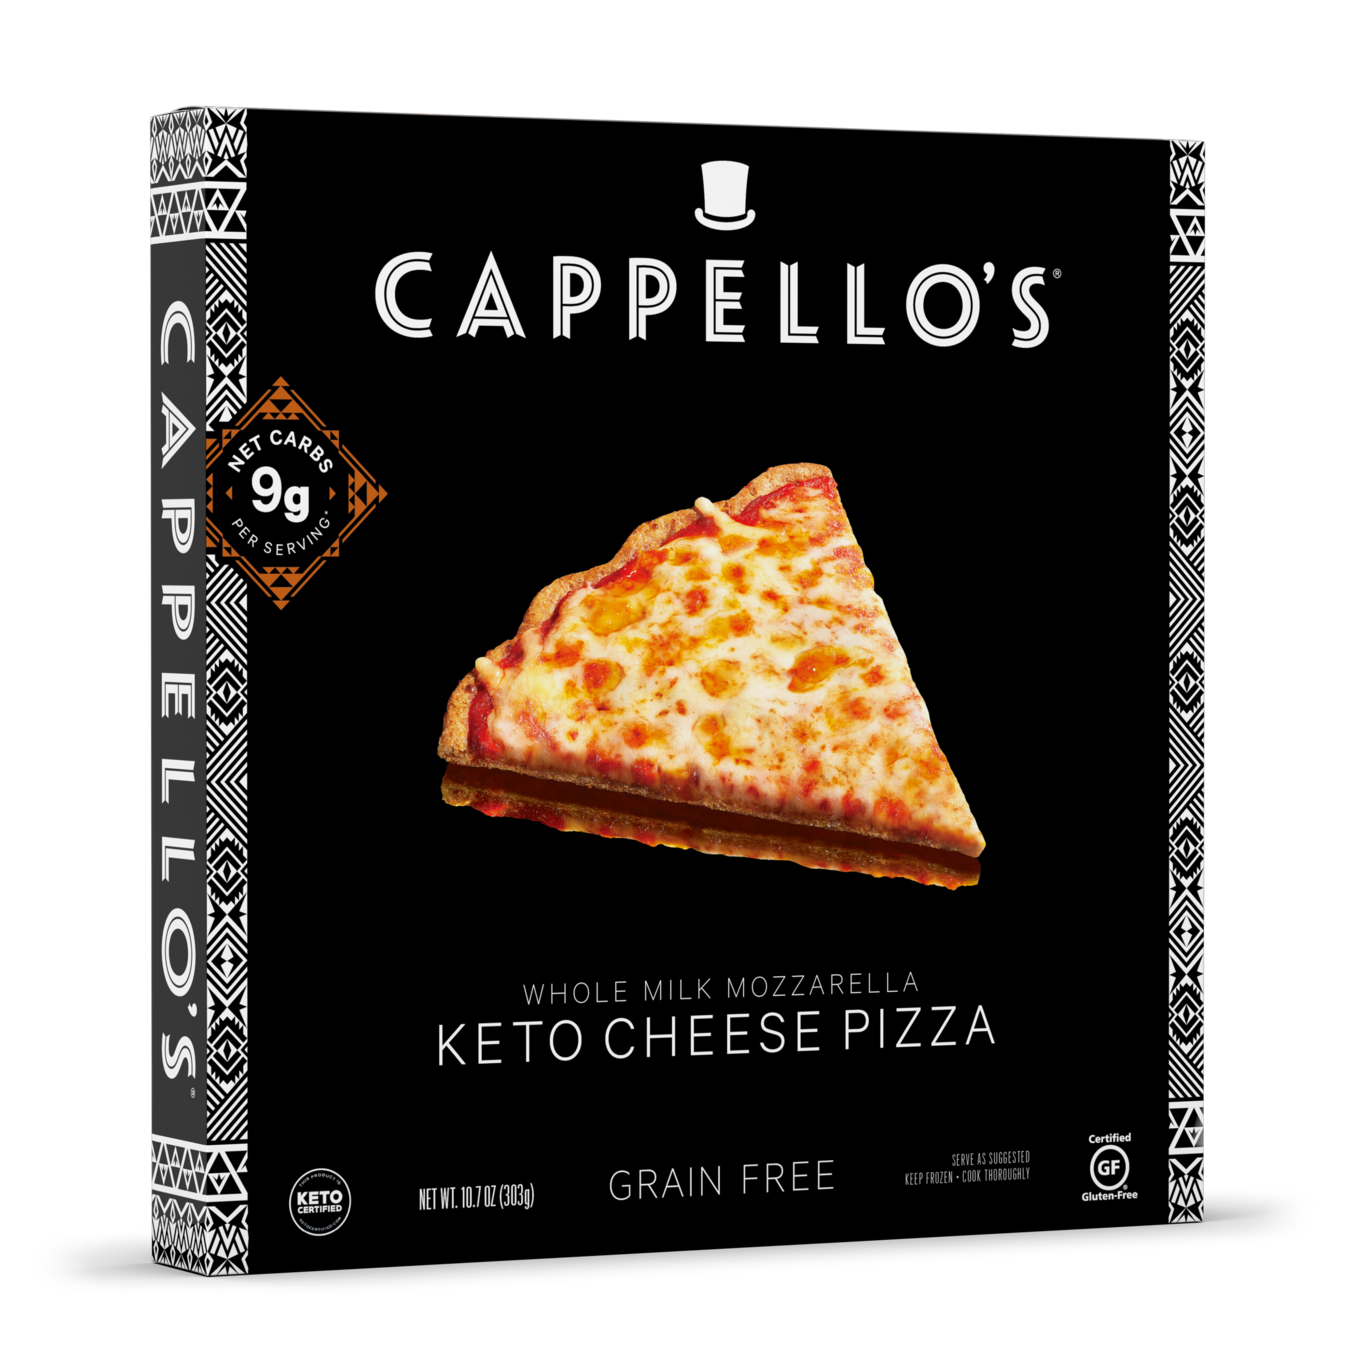 Keto Cheese Pizza - Cappellos - Certified Paleo, Paleo Friendly, Paleo Vegan, Keto Certified by the Paleo Foundation